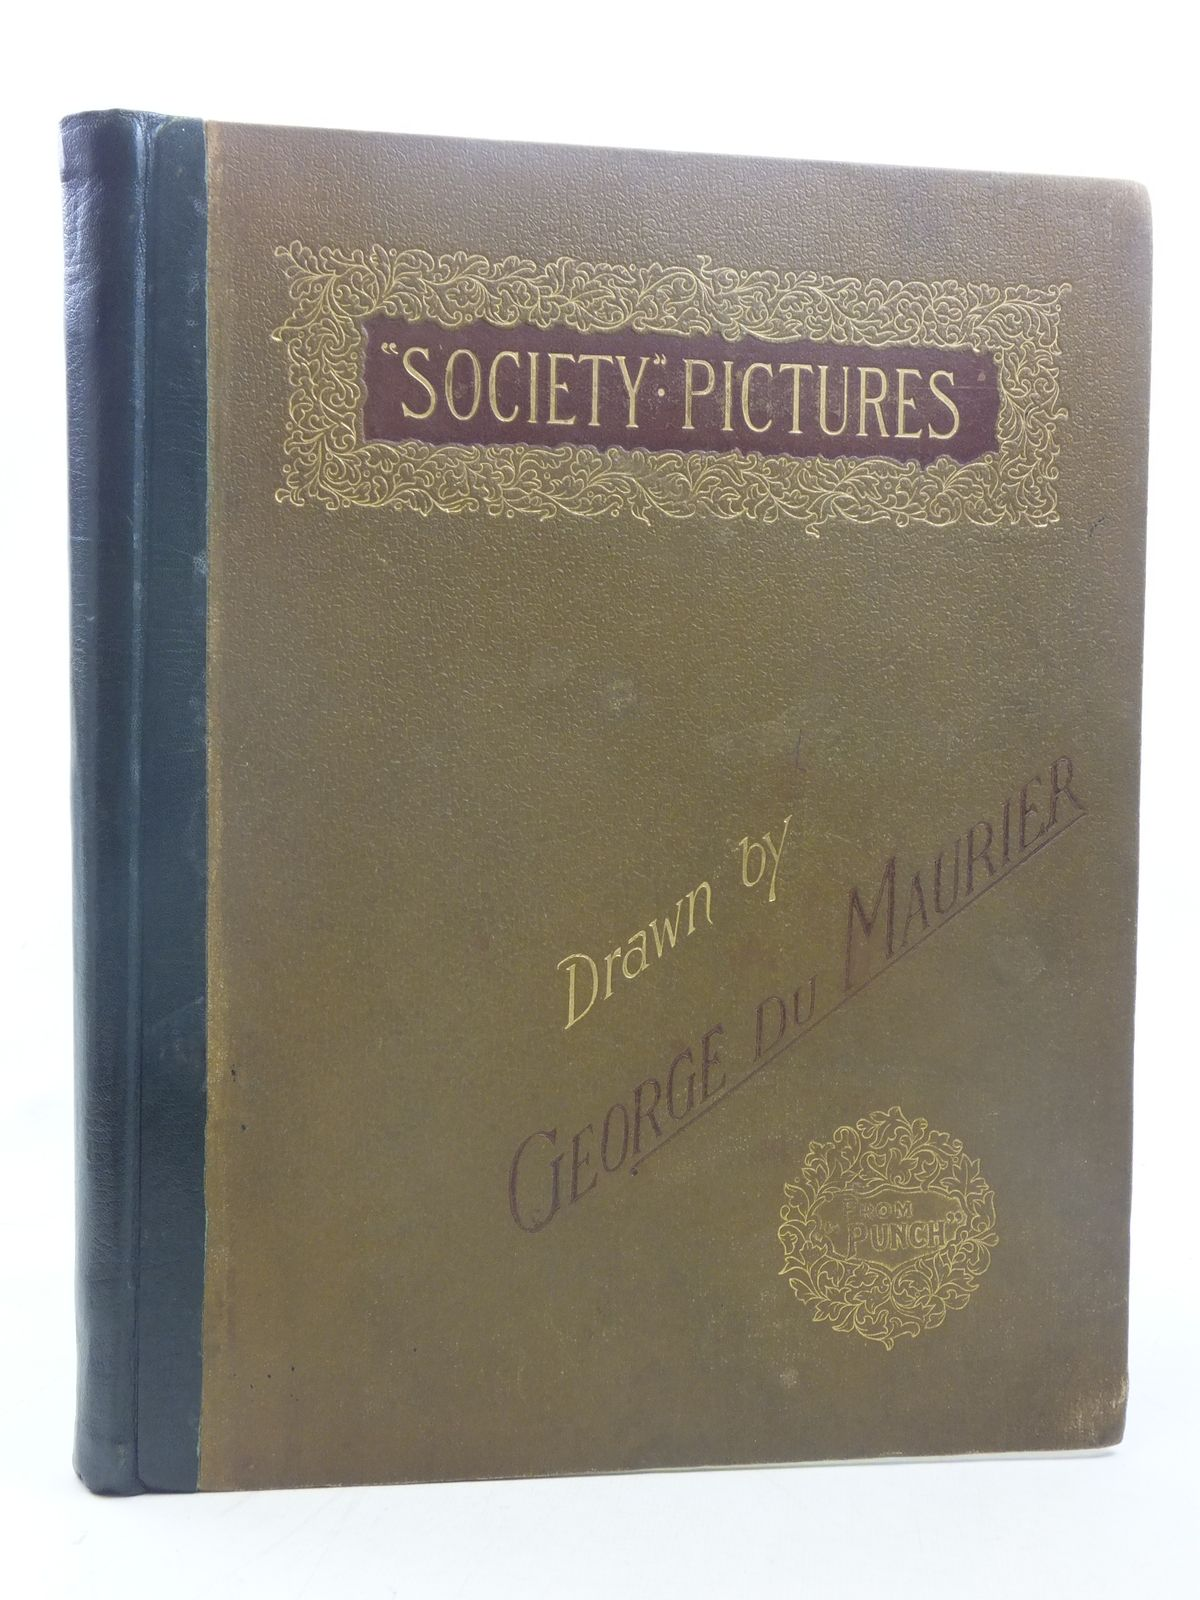 Photo of SOCIETY PICTURES VOLUME ONE illustrated by Du Maurier, George published by Bradbury, Agnew & Co. Ltd. (STOCK CODE: 2117269)  for sale by Stella & Rose's Books